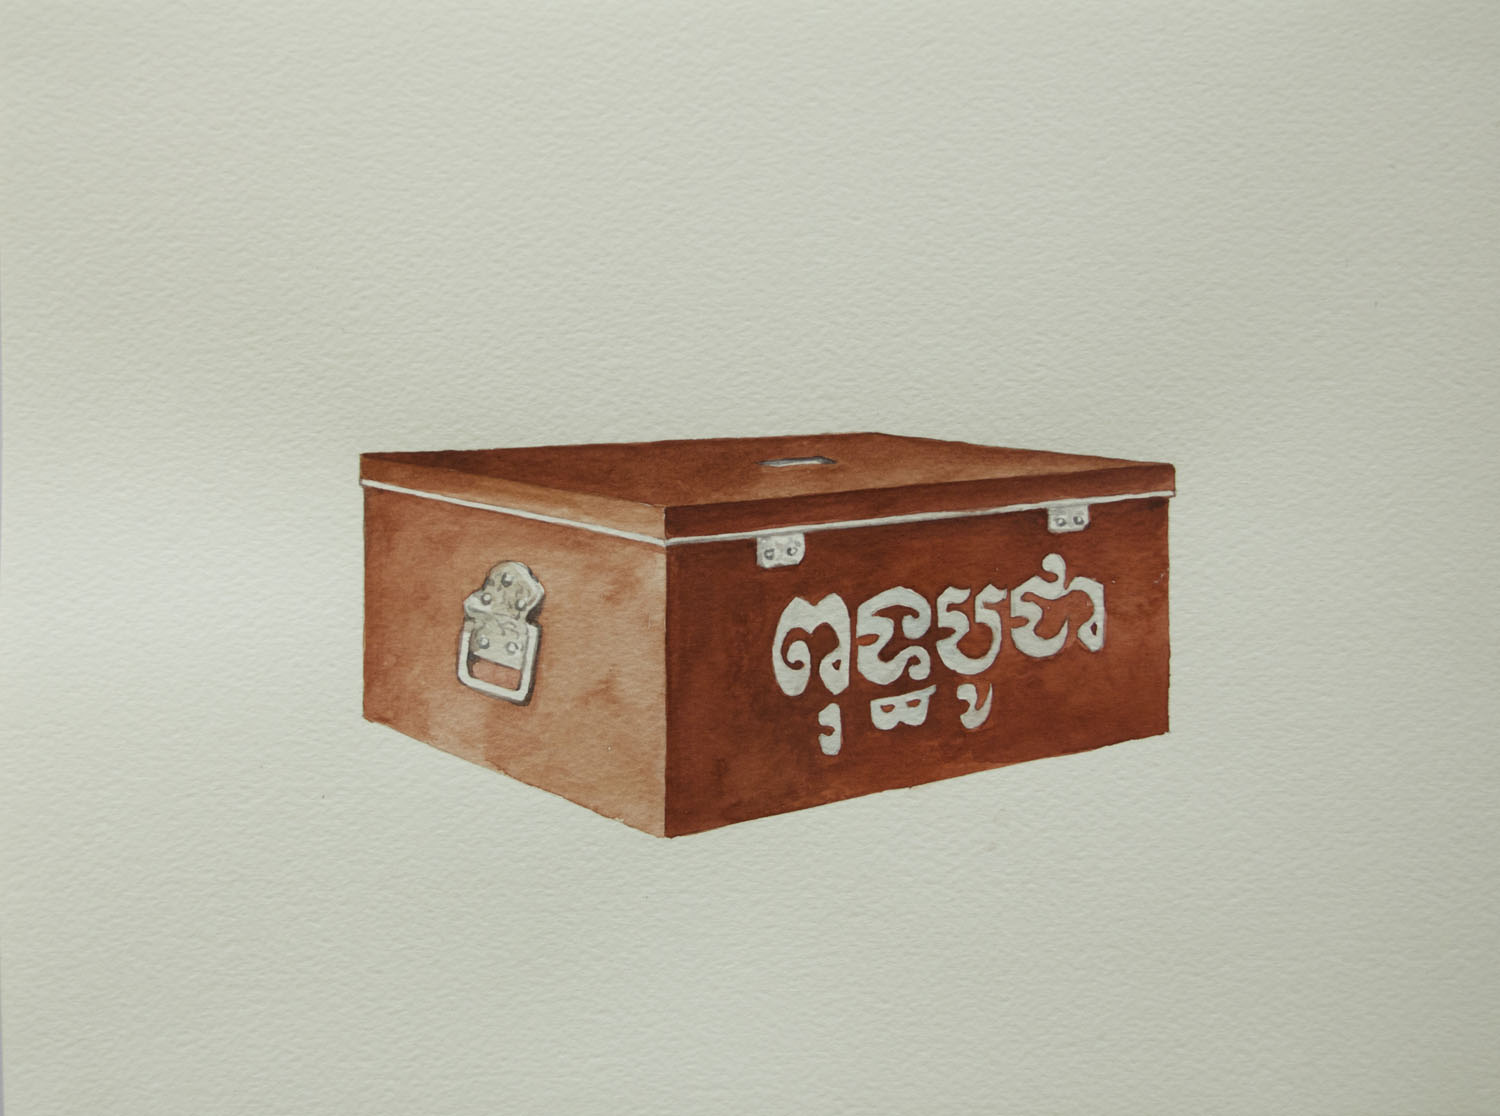 Objects of Belief: Bra-ab Puth Bochea